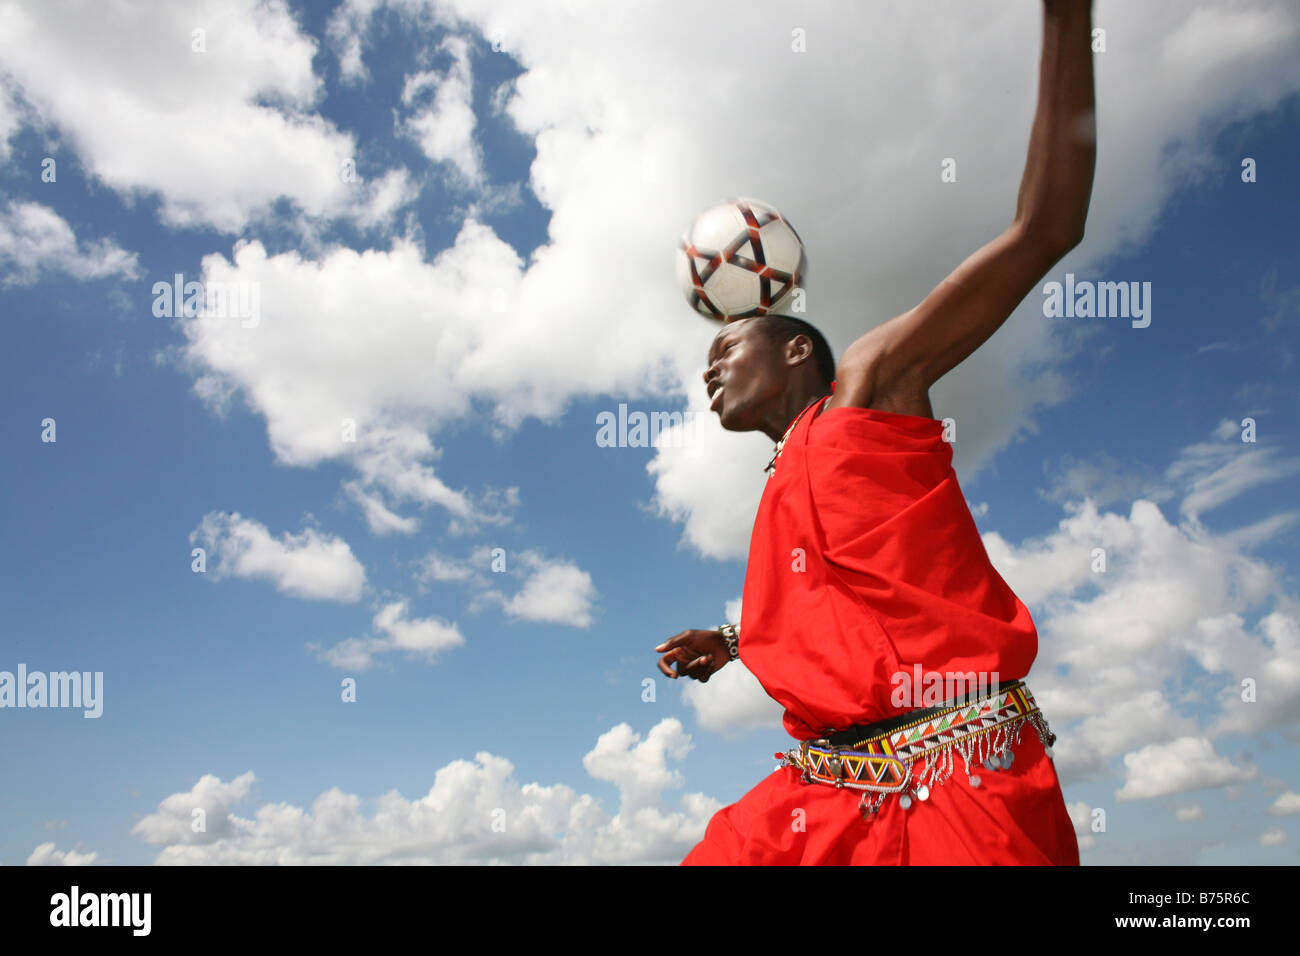 Football is opne of the most popular activities among the Massai tribe in south kenya Whenever their cows are brought - Stock Image